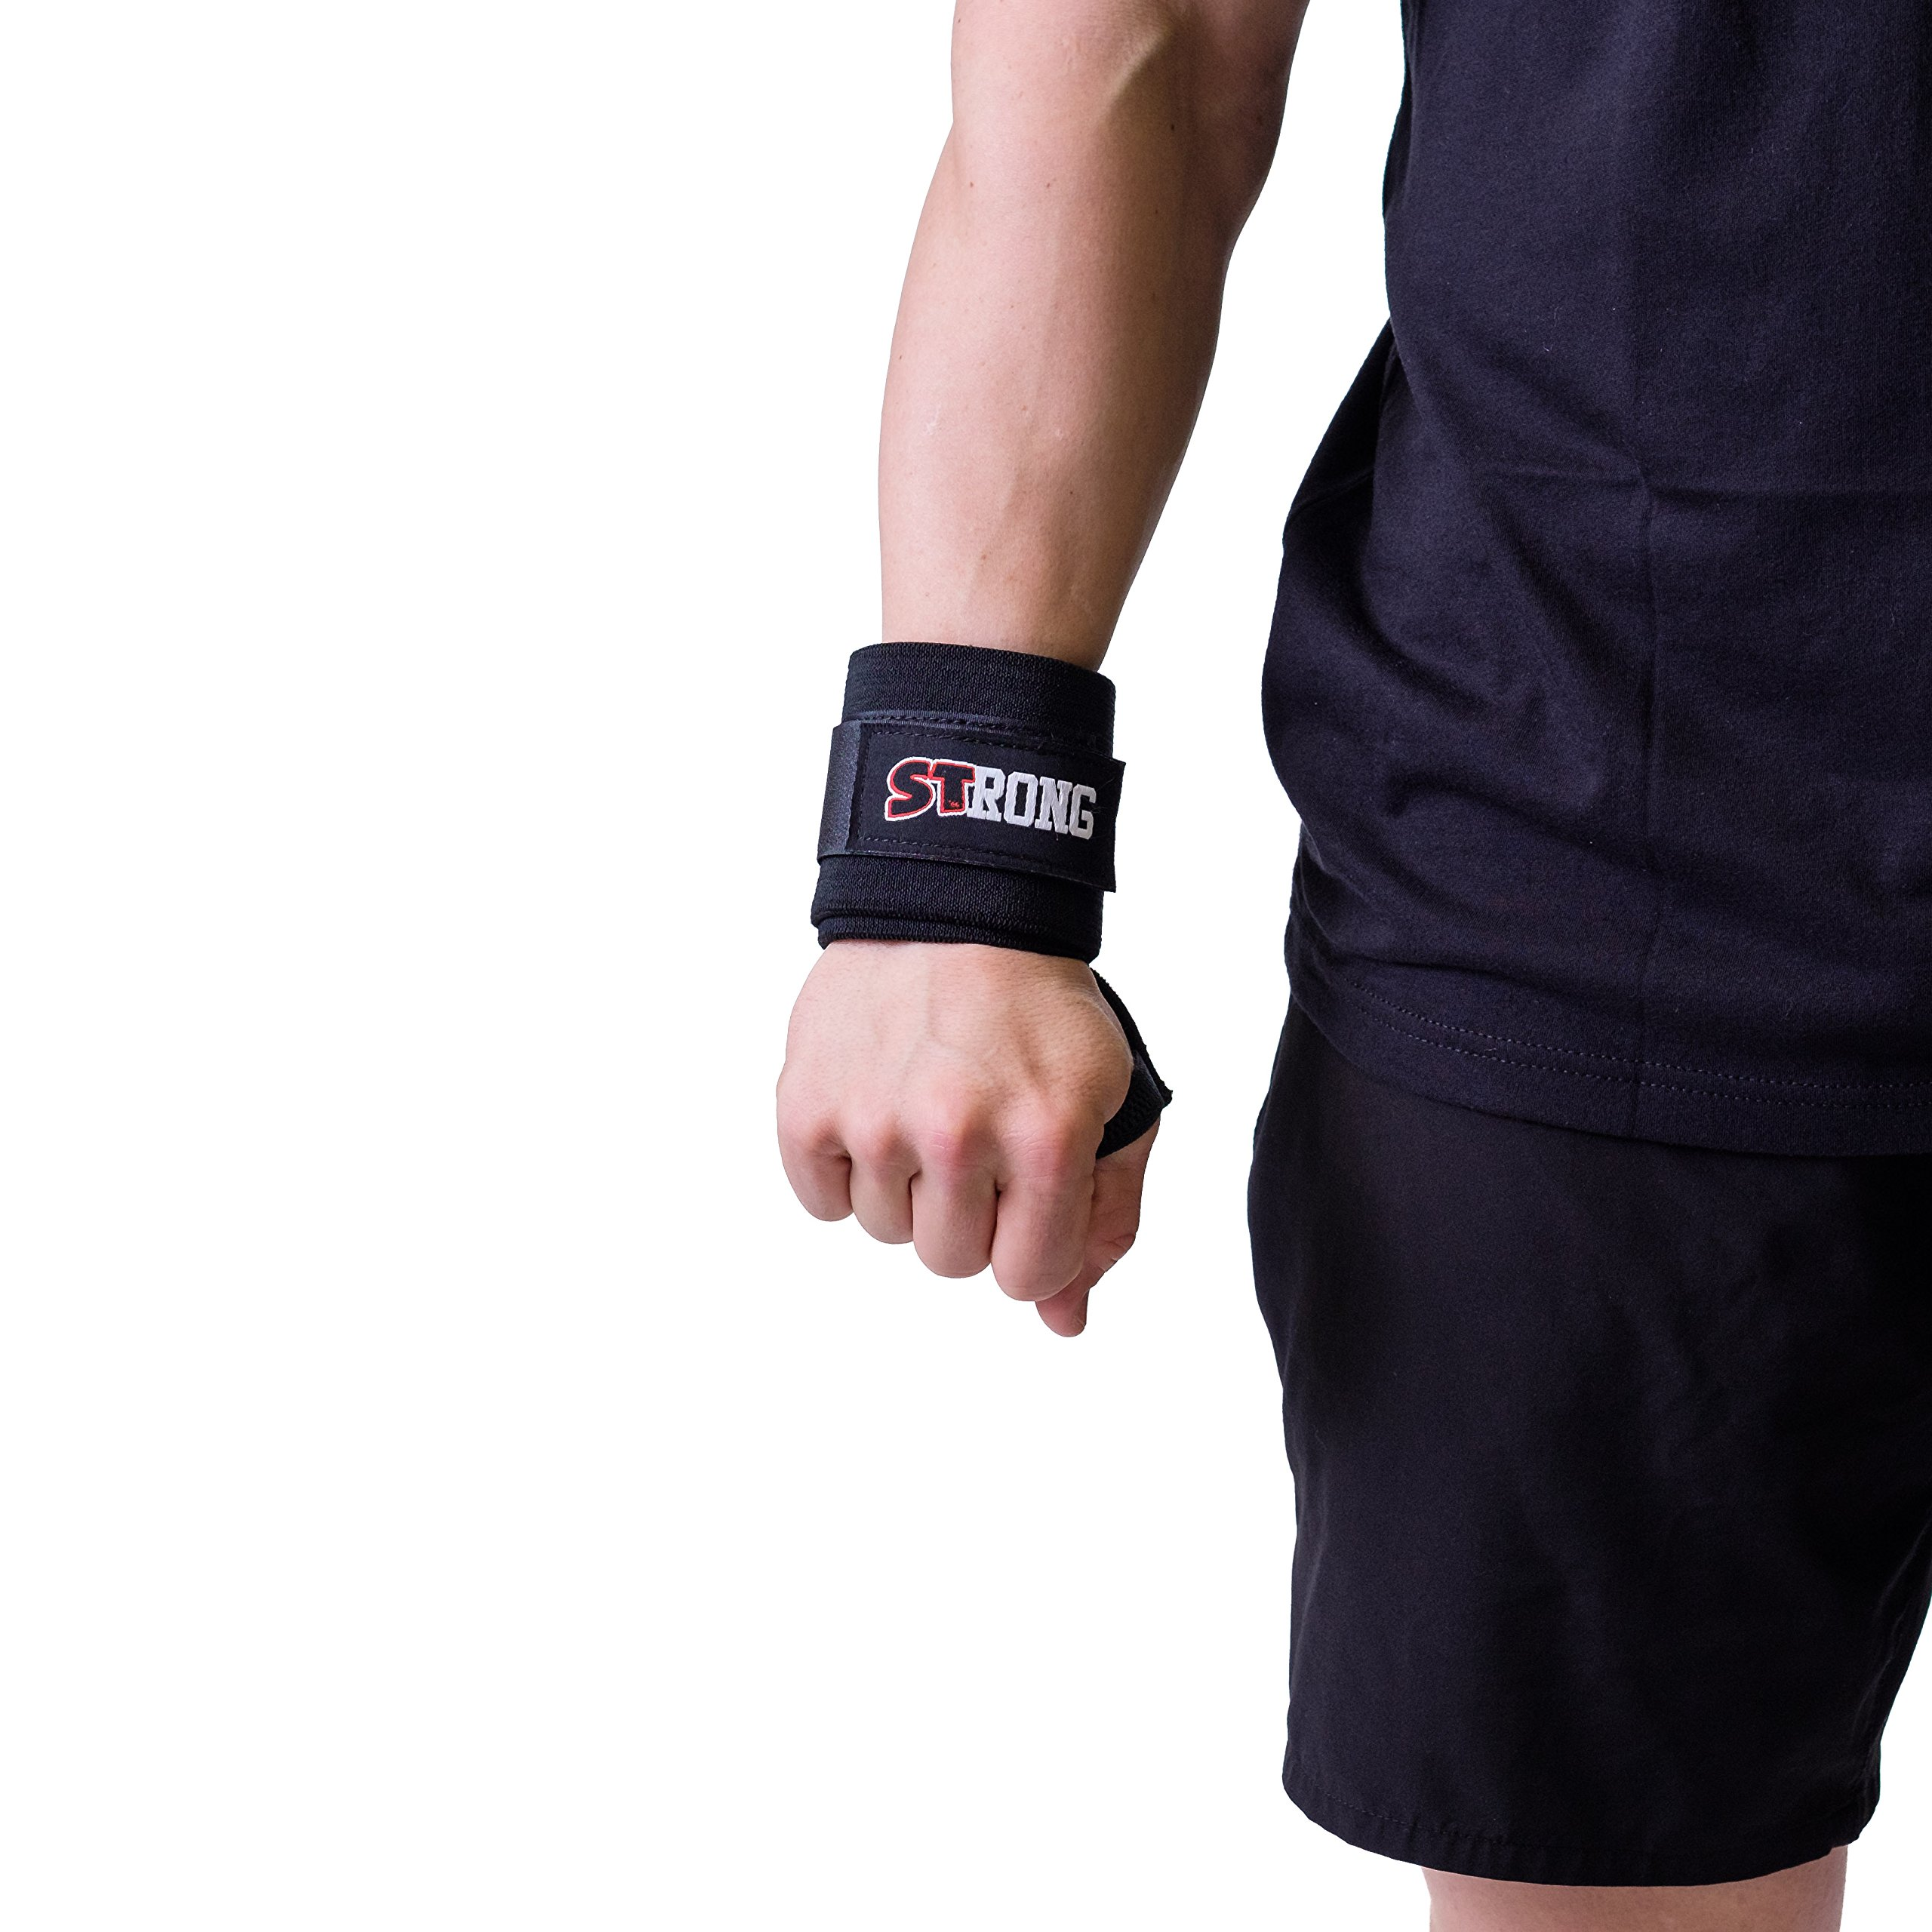 Strong Wrist Wraps - 30 inch